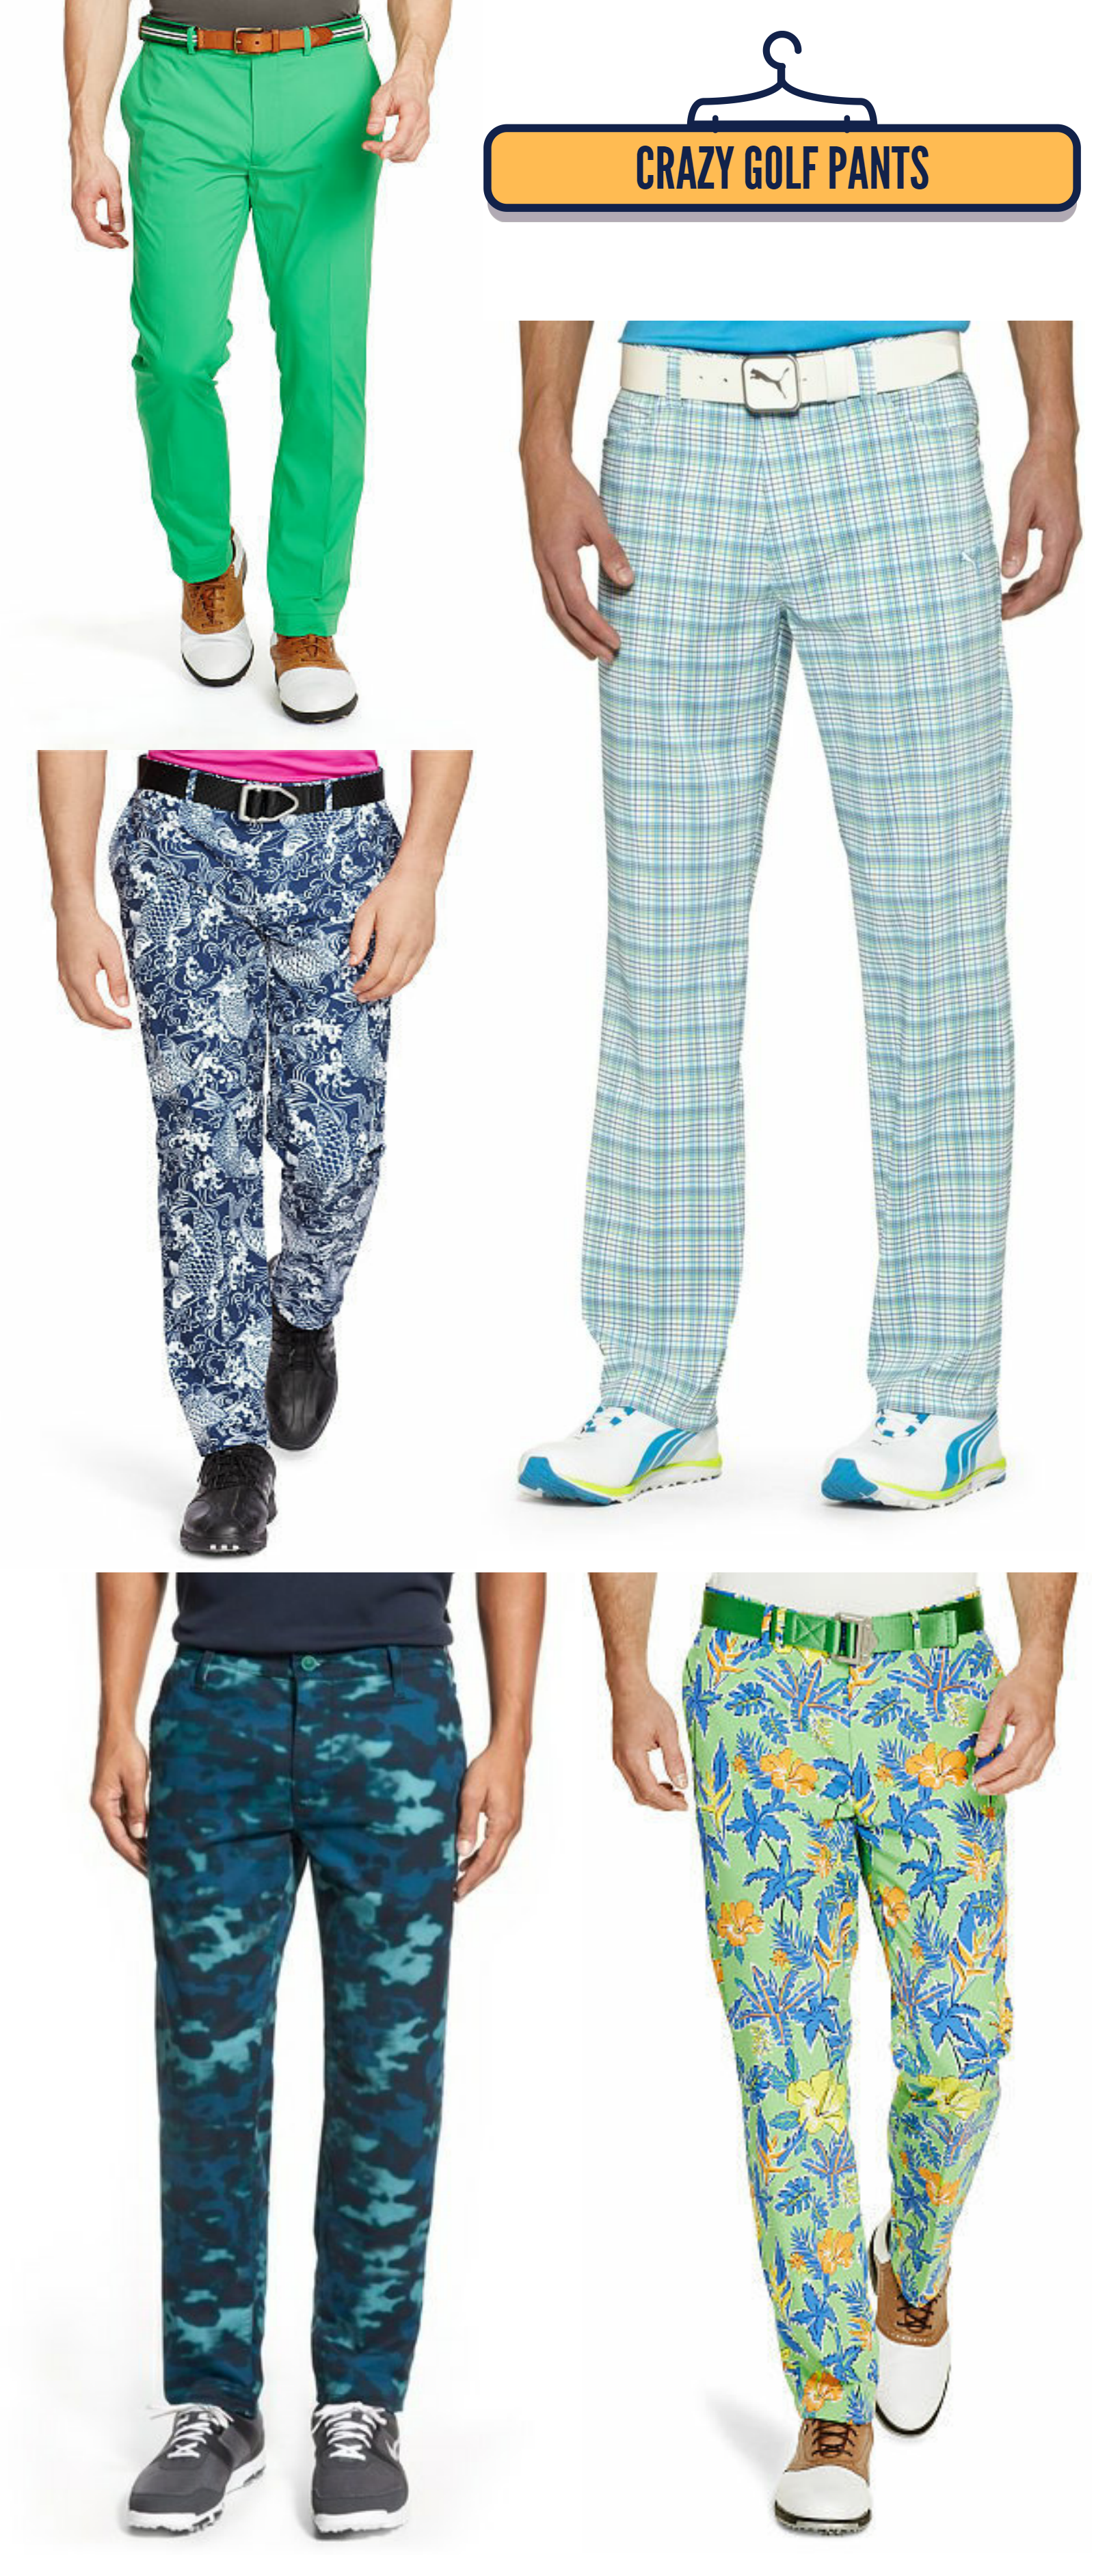 save off retail prices big sale Crazy golf pants, wild colored golf clothes, colorful golf ...